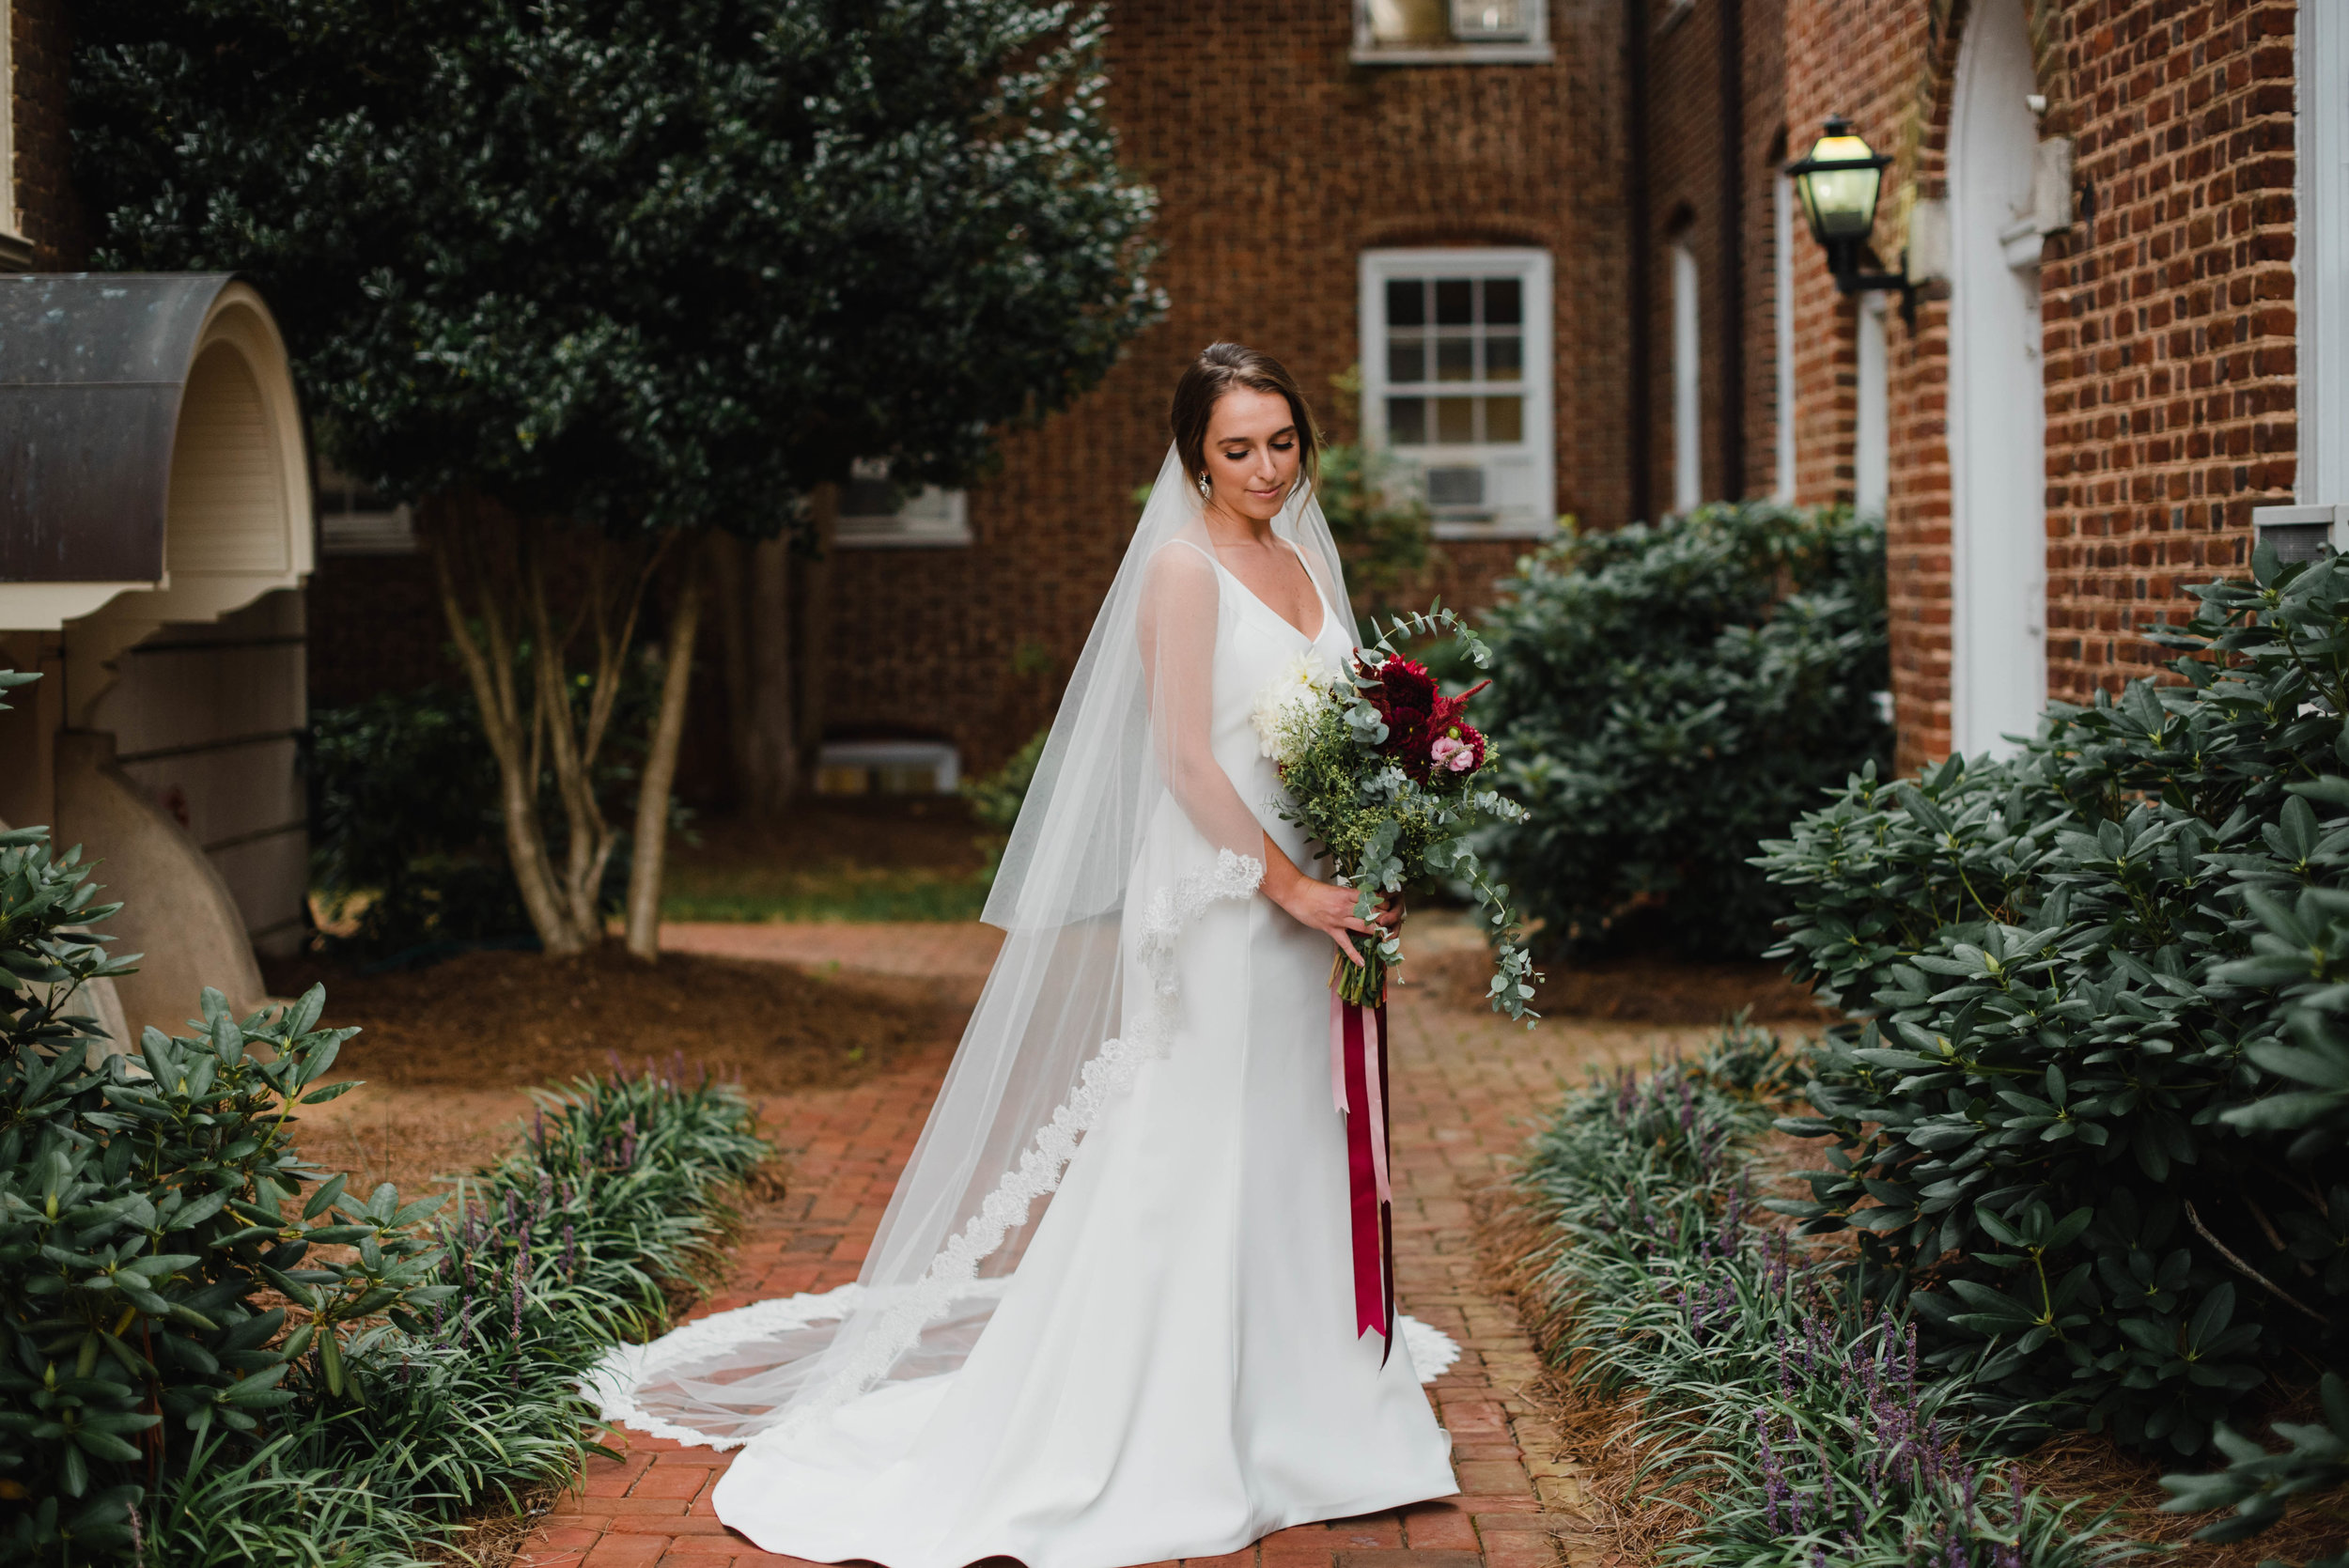 Regan bridals-15.jpg